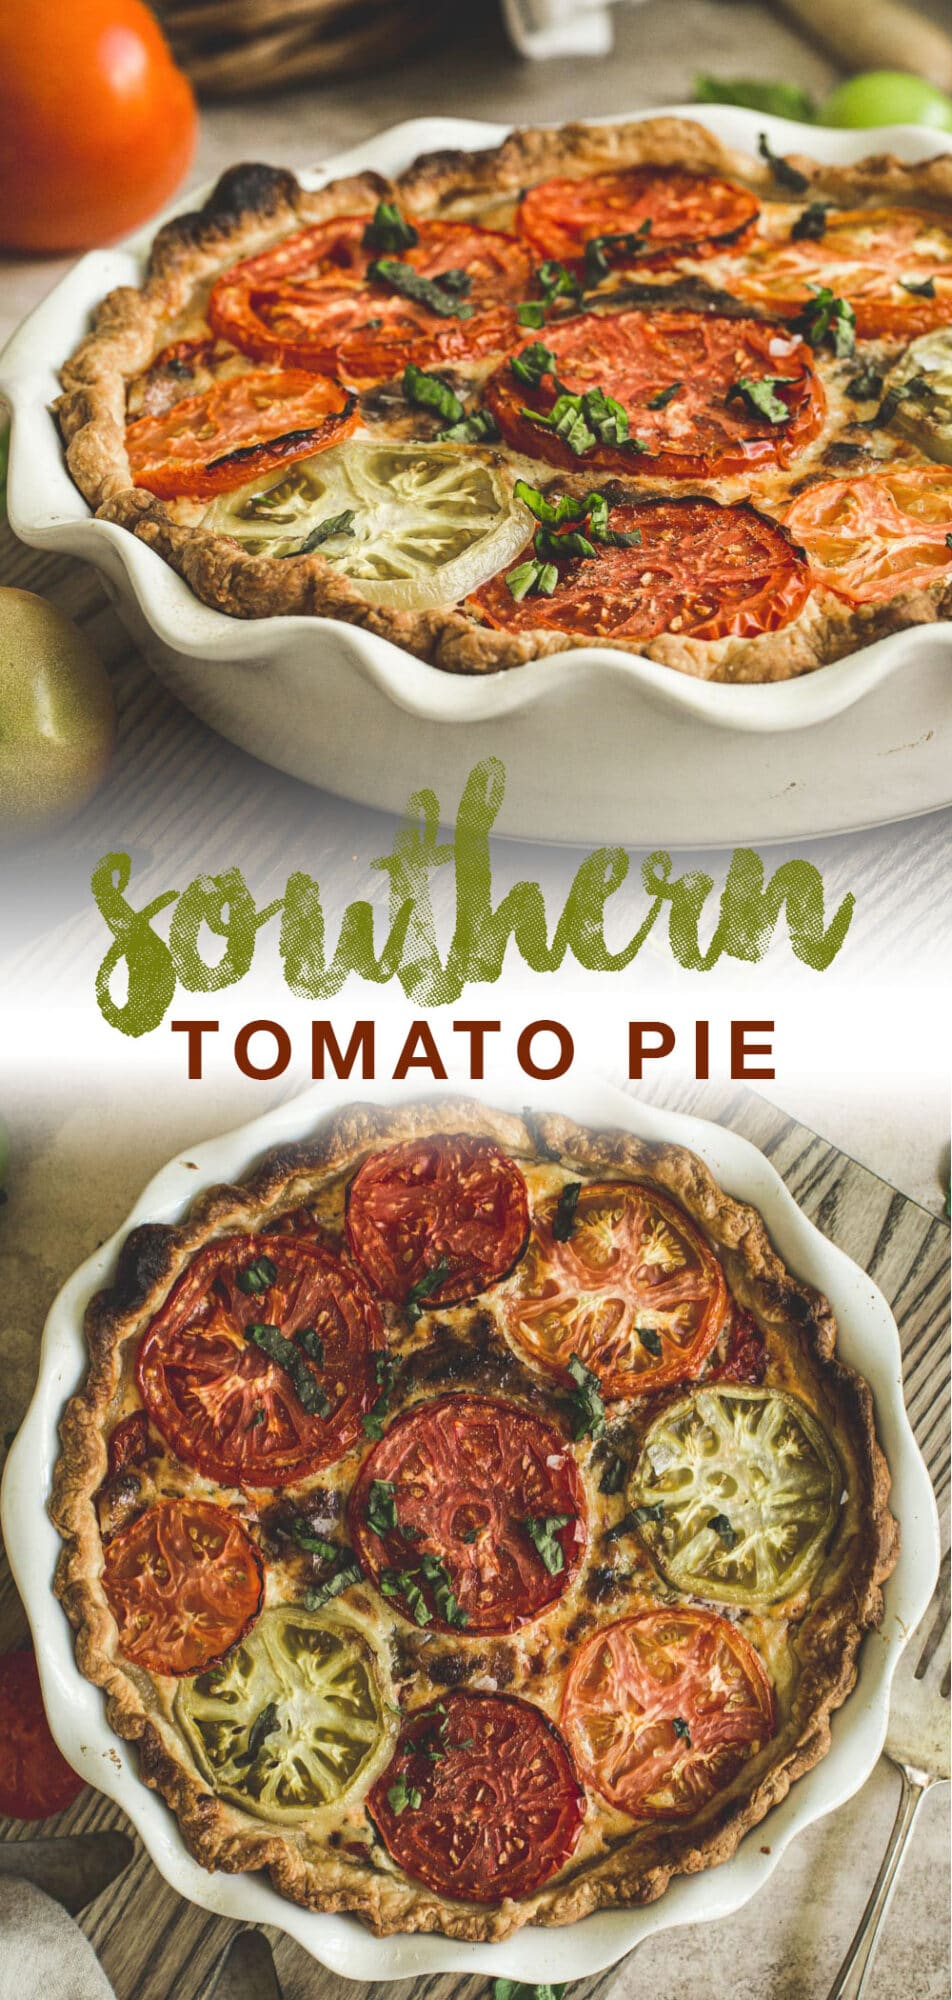 double image of tomato pie with green and red title